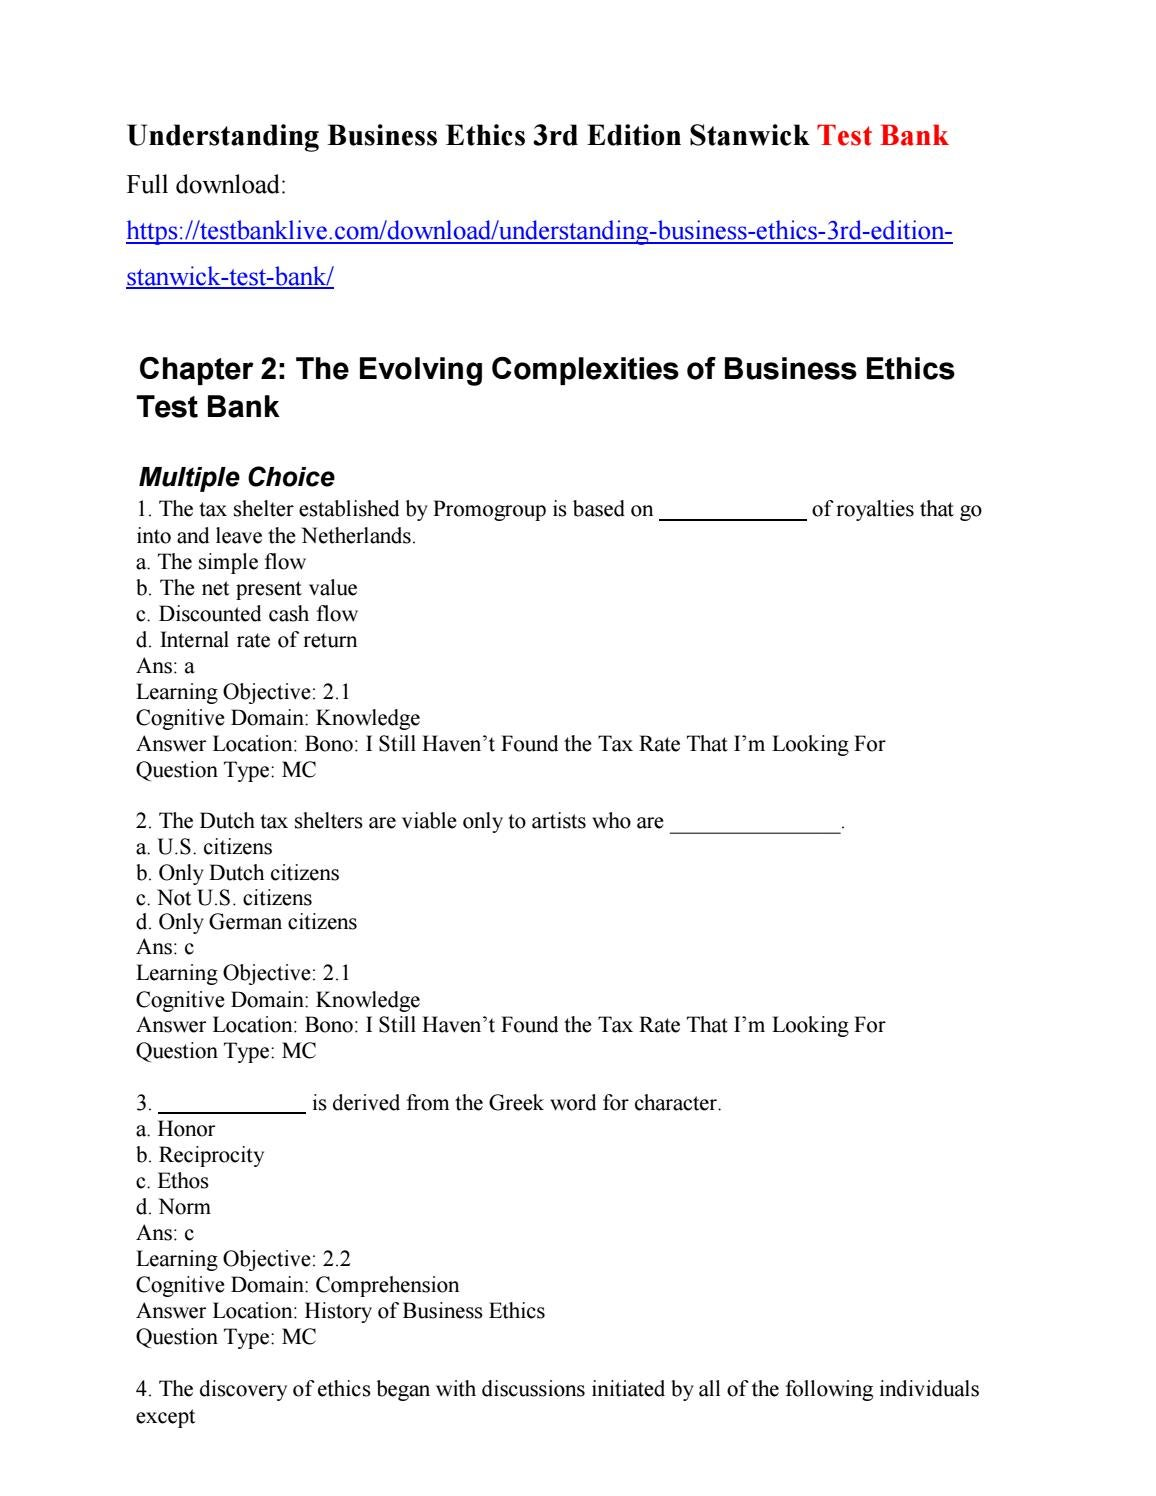 Understanding business ethics 3rd edition stanwick test bank by